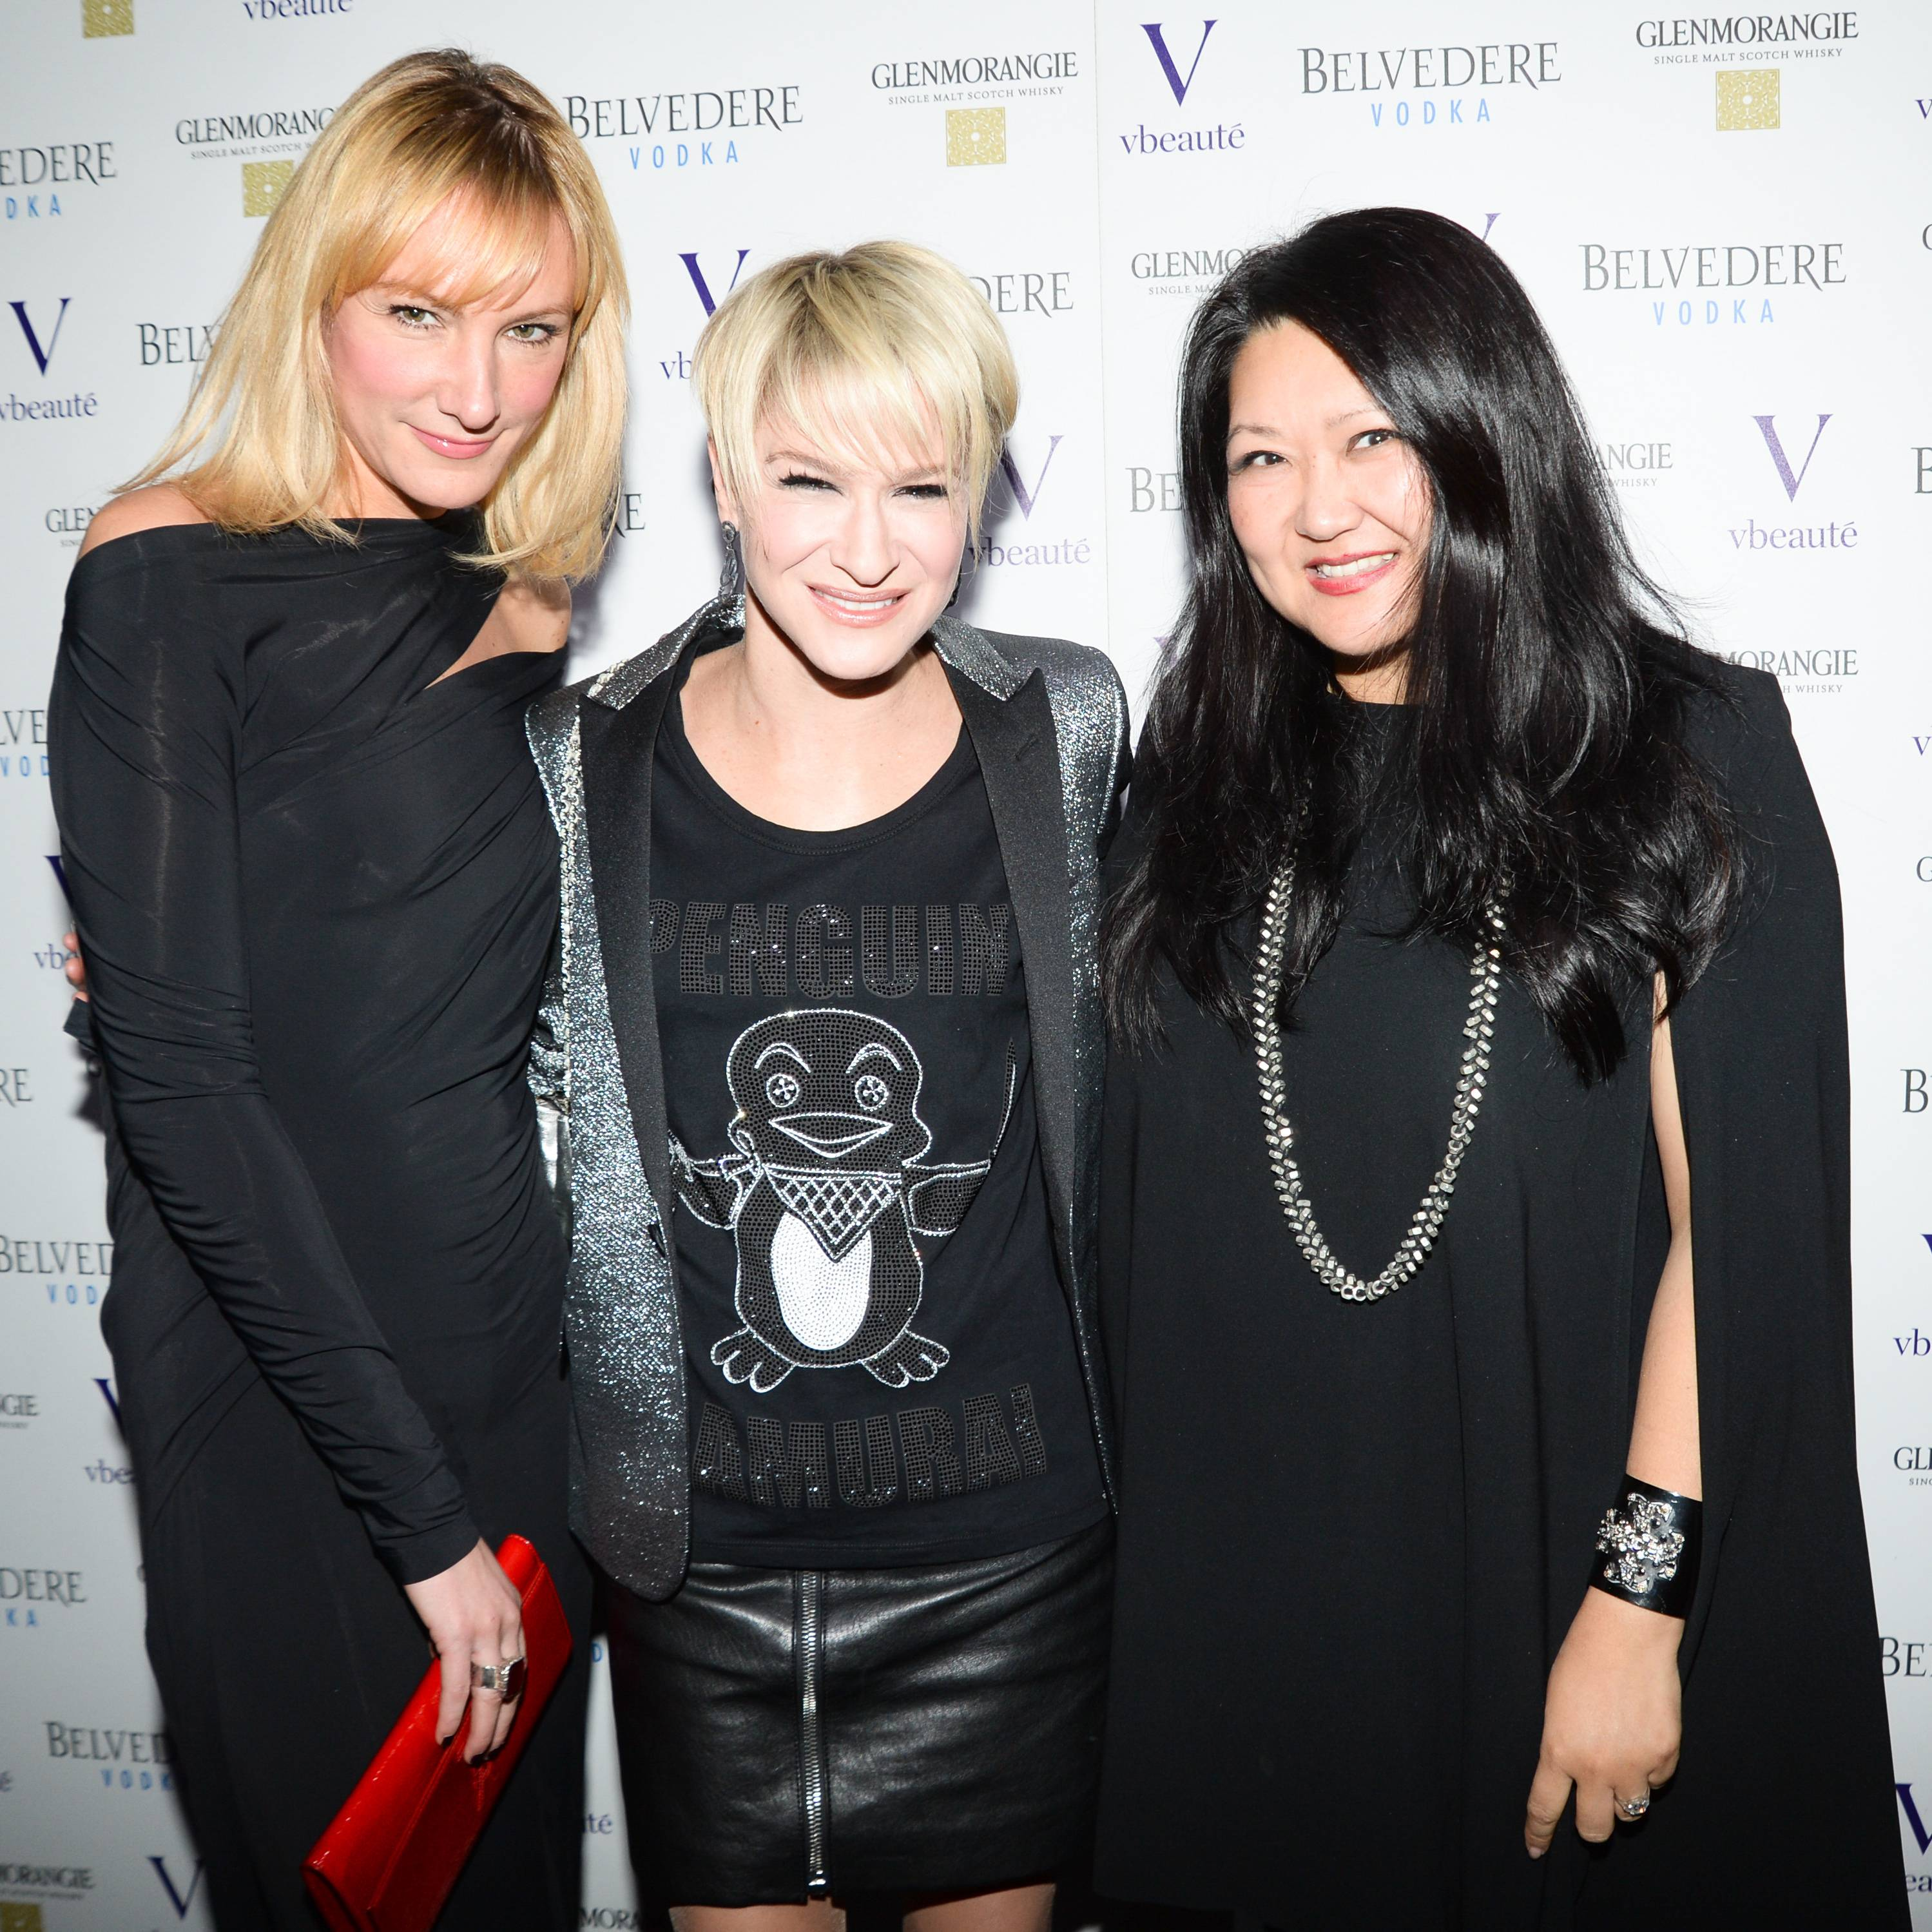 JULIE MACKLOWE and VBEAUTE's Joint Birthday Party